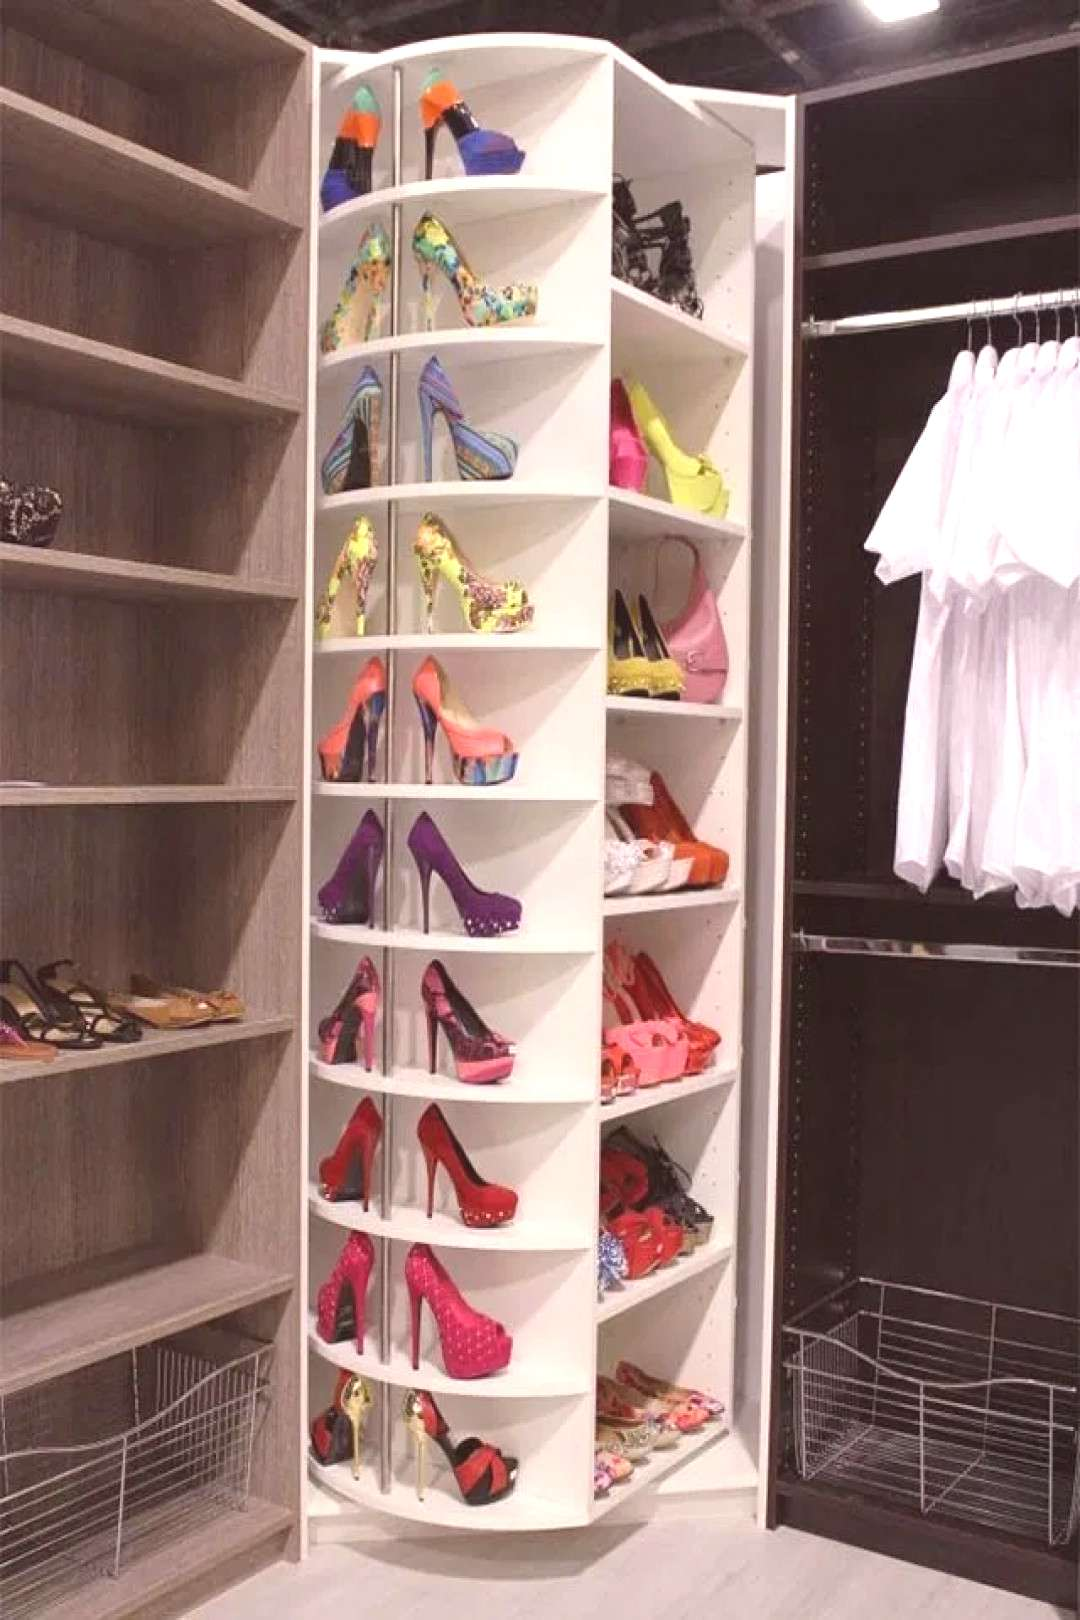 39 Simple Shoe Storage Ideas That Will Declutter Your Hallway | Posh Pennies#declutter